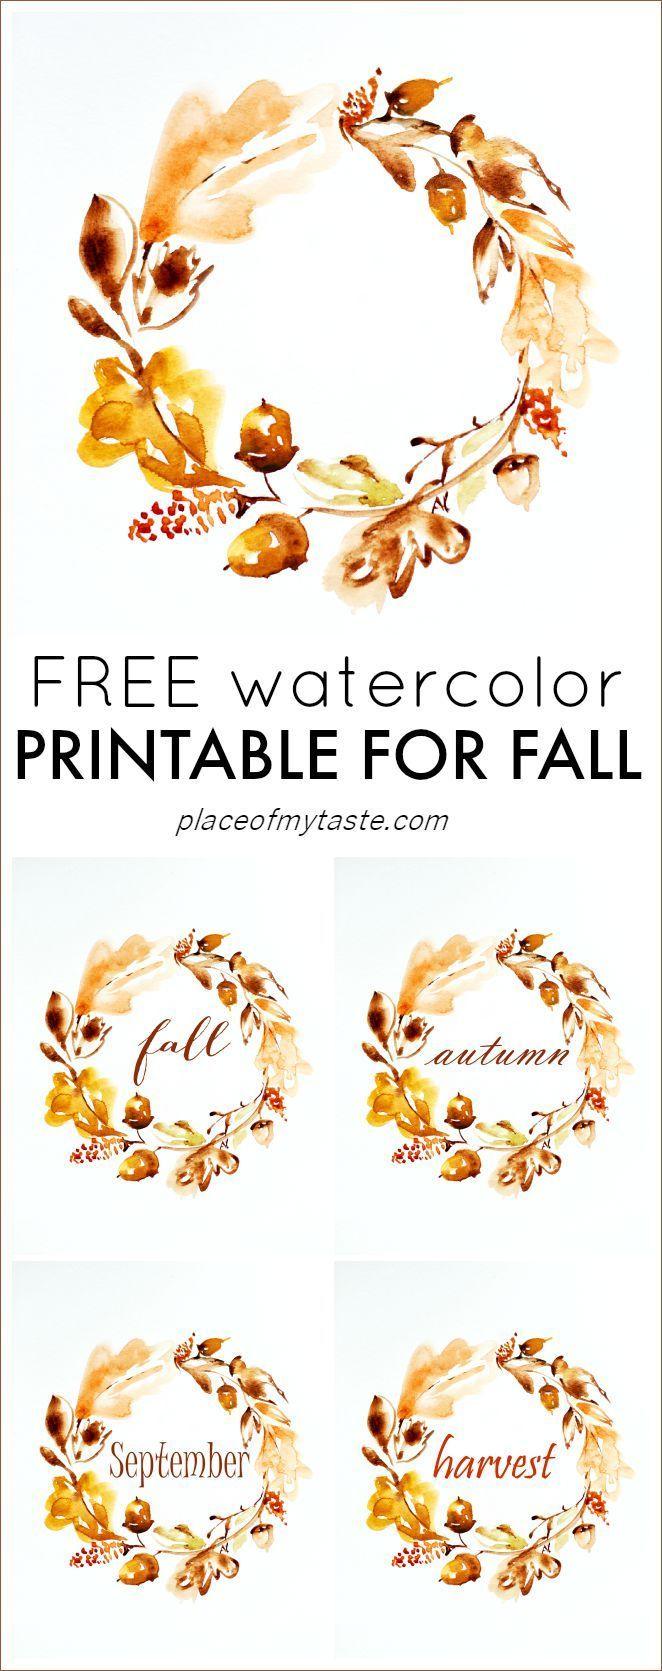 Free fall printable to brighten up your home. Print, frame, enjoy!